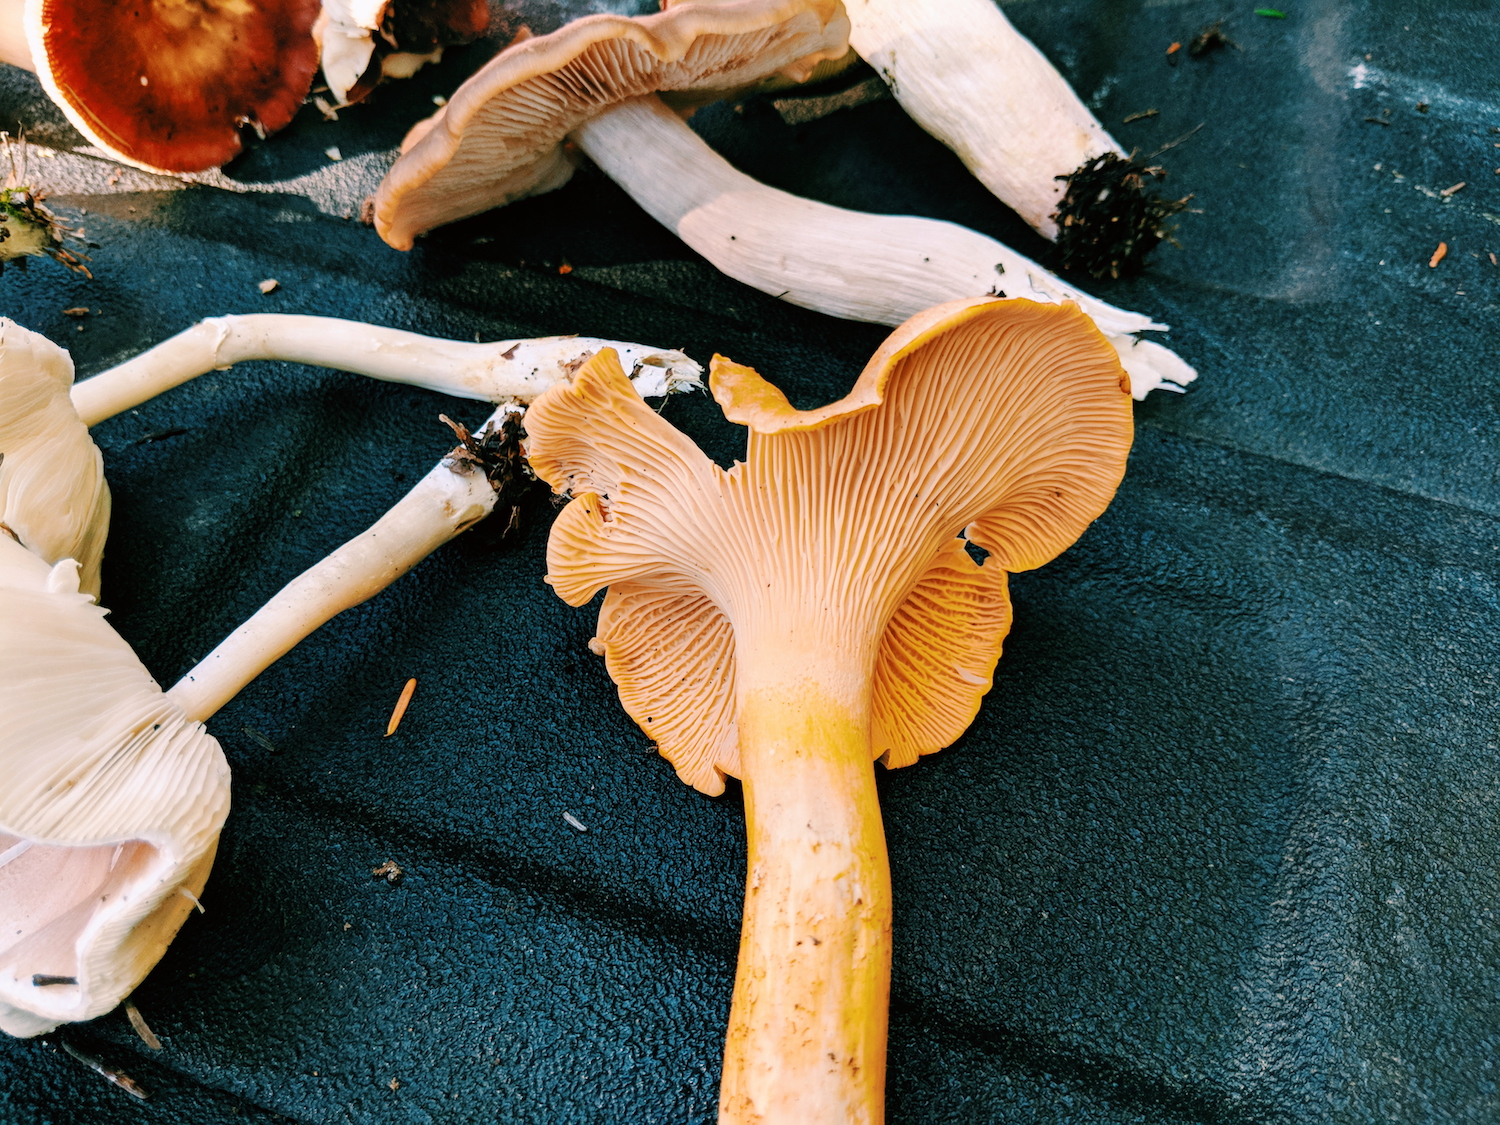 Here's a close-up of What I Believe is a chanterelle.